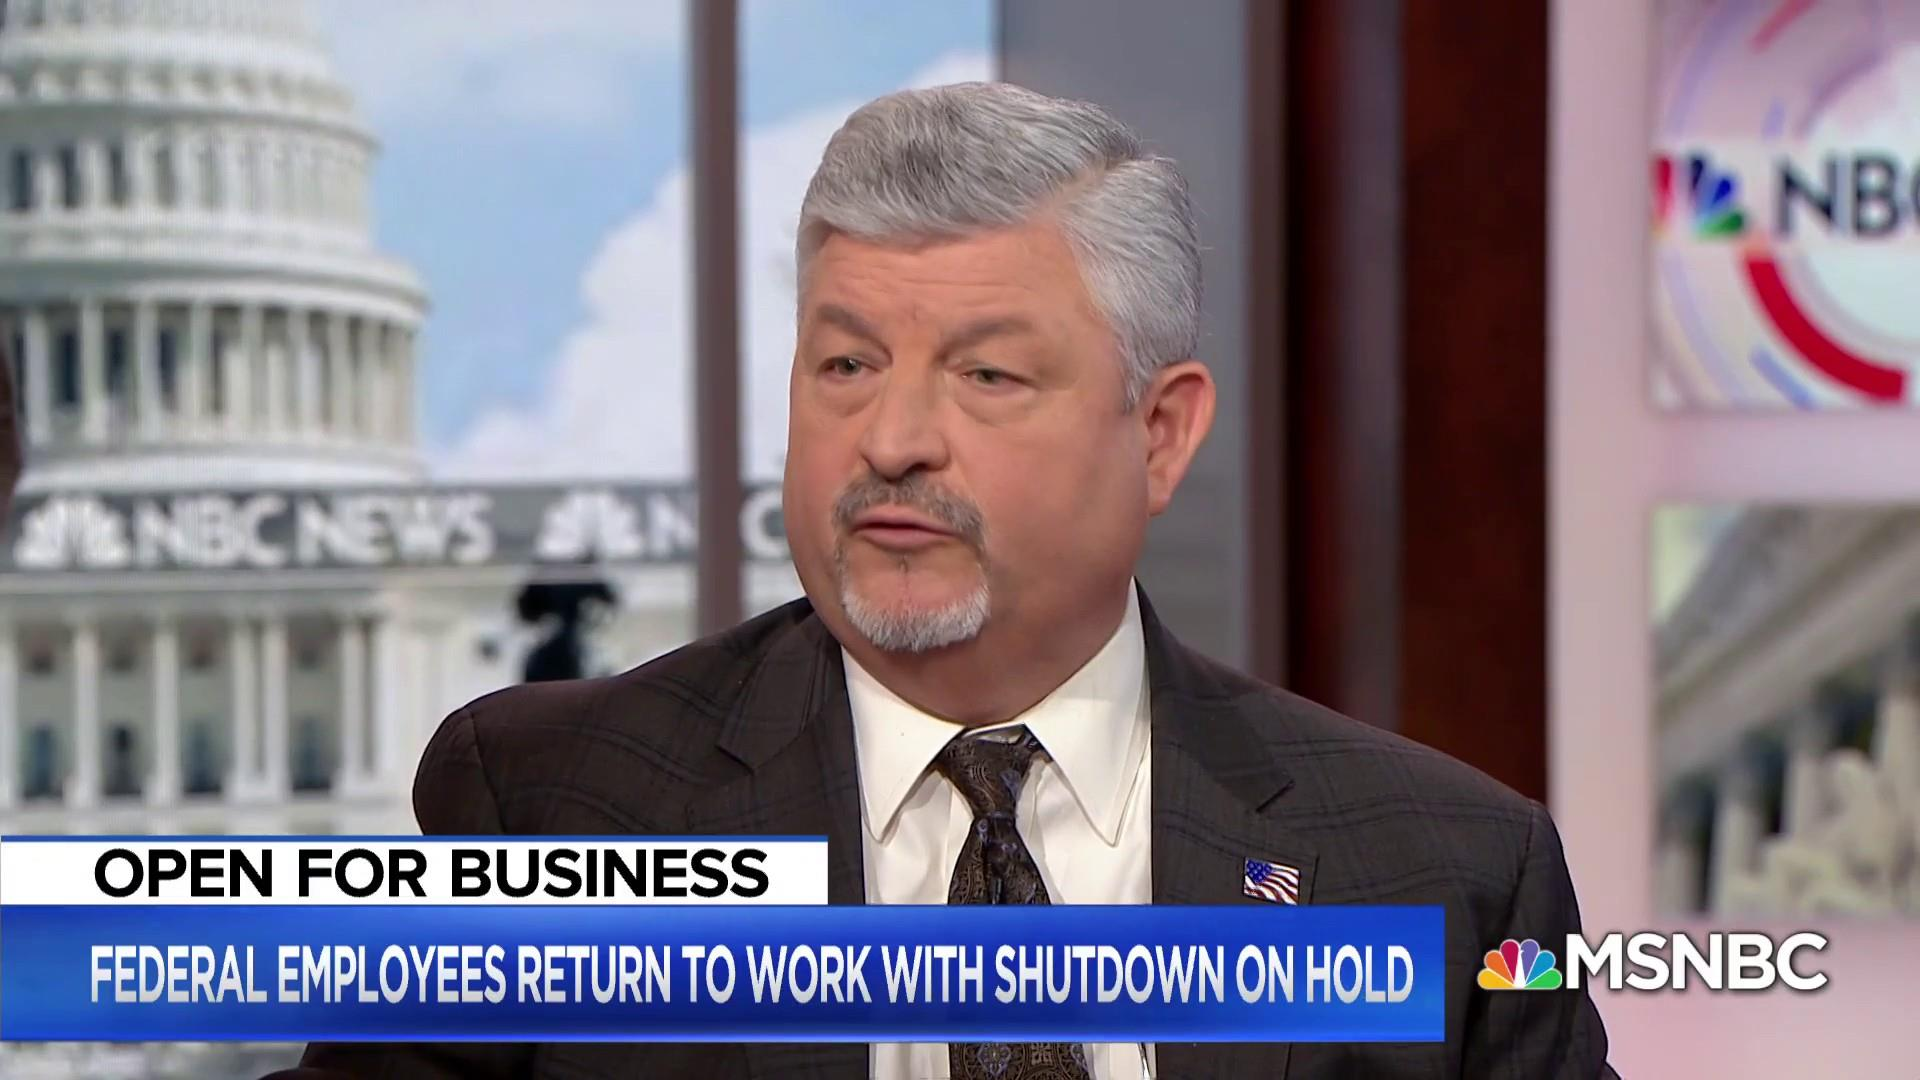 President of National Treasury Employees Union: Federal workers won't get paid until likely Thursday